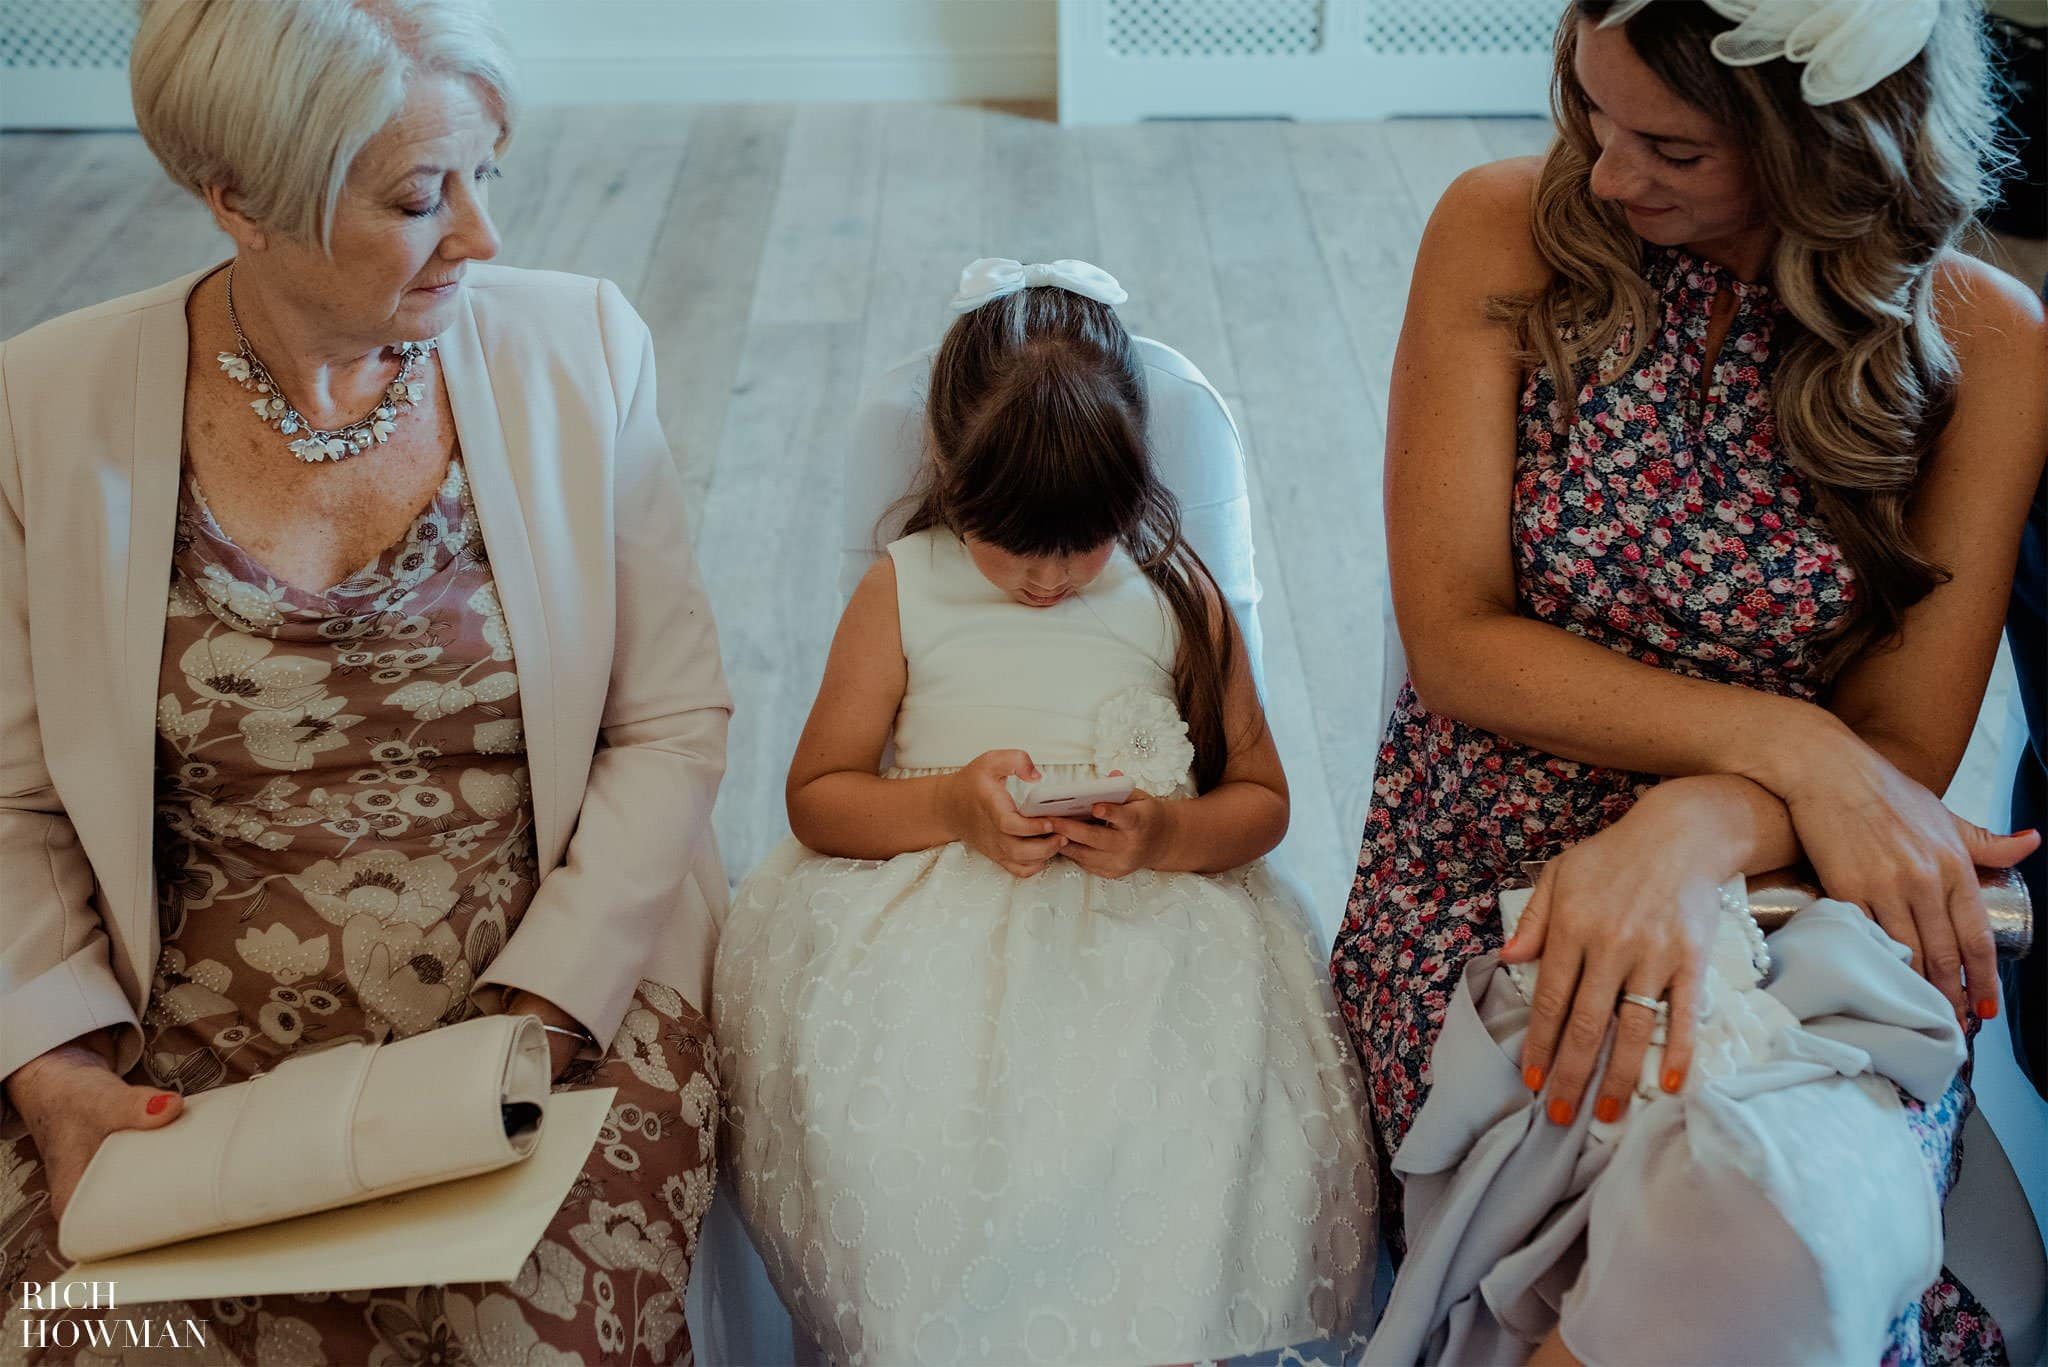 Photograph of a little girl playing with her phone at a wedding in Bradford on Avon